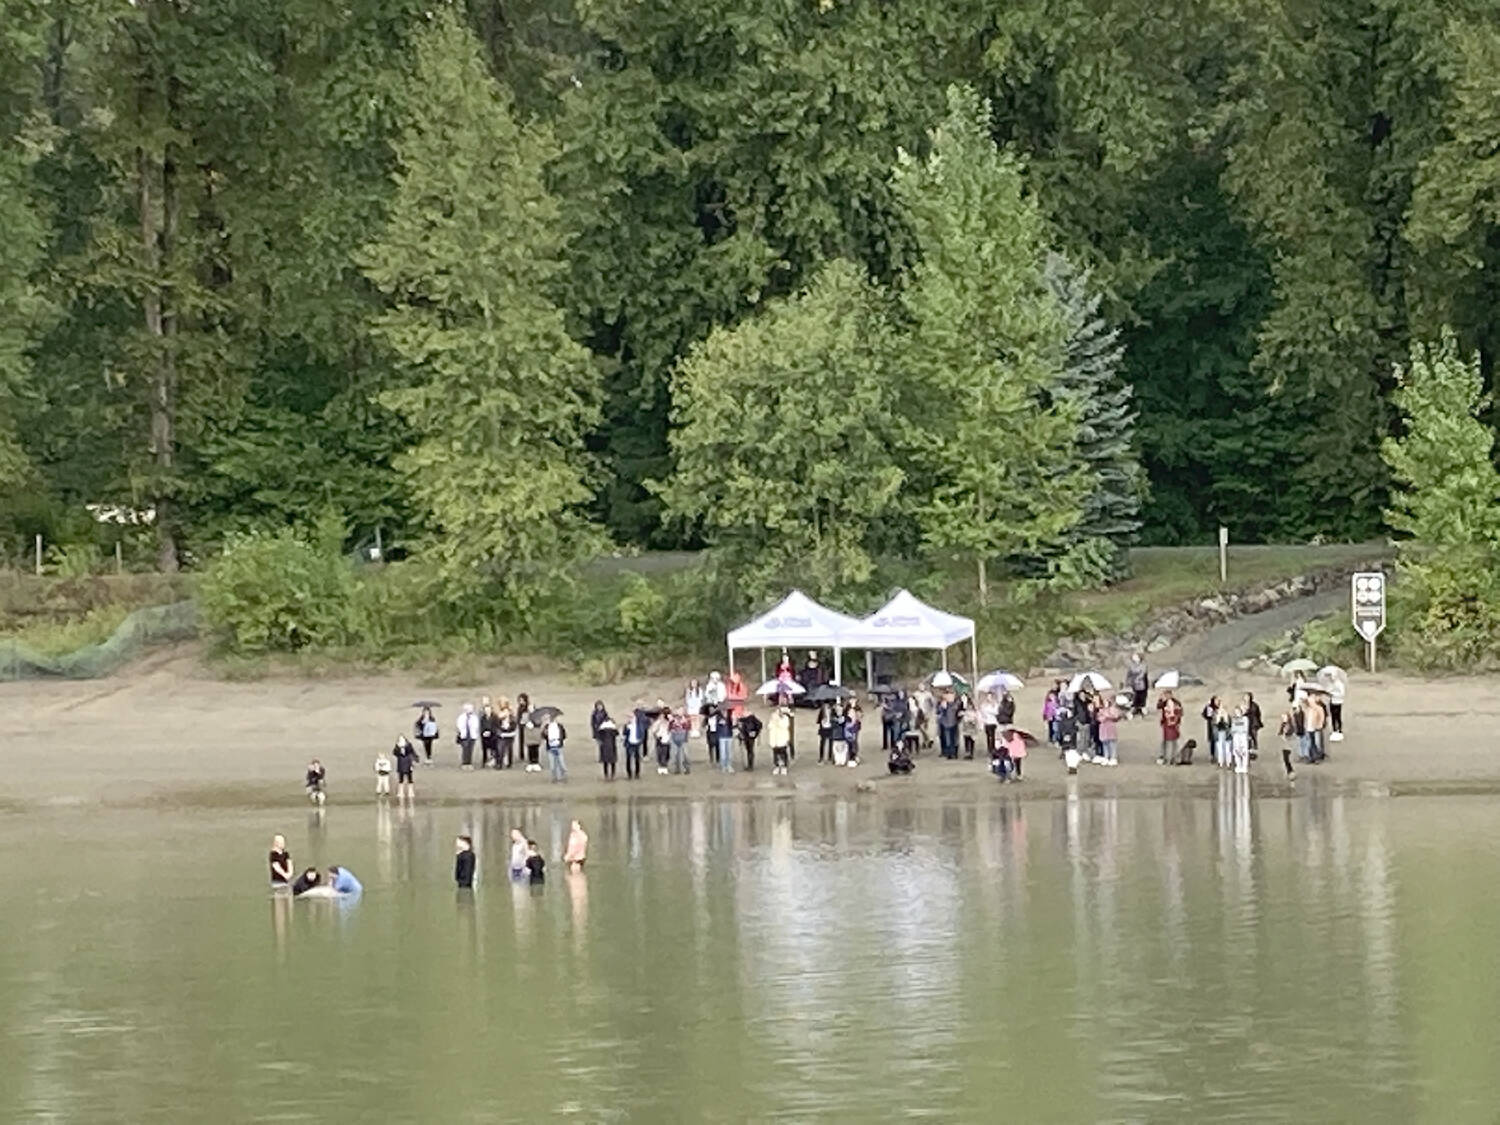 Wout Brouwer came upon this scene of people being baptised in the Fraser River on Sept. 19. (Special to the Langley Advance Times)